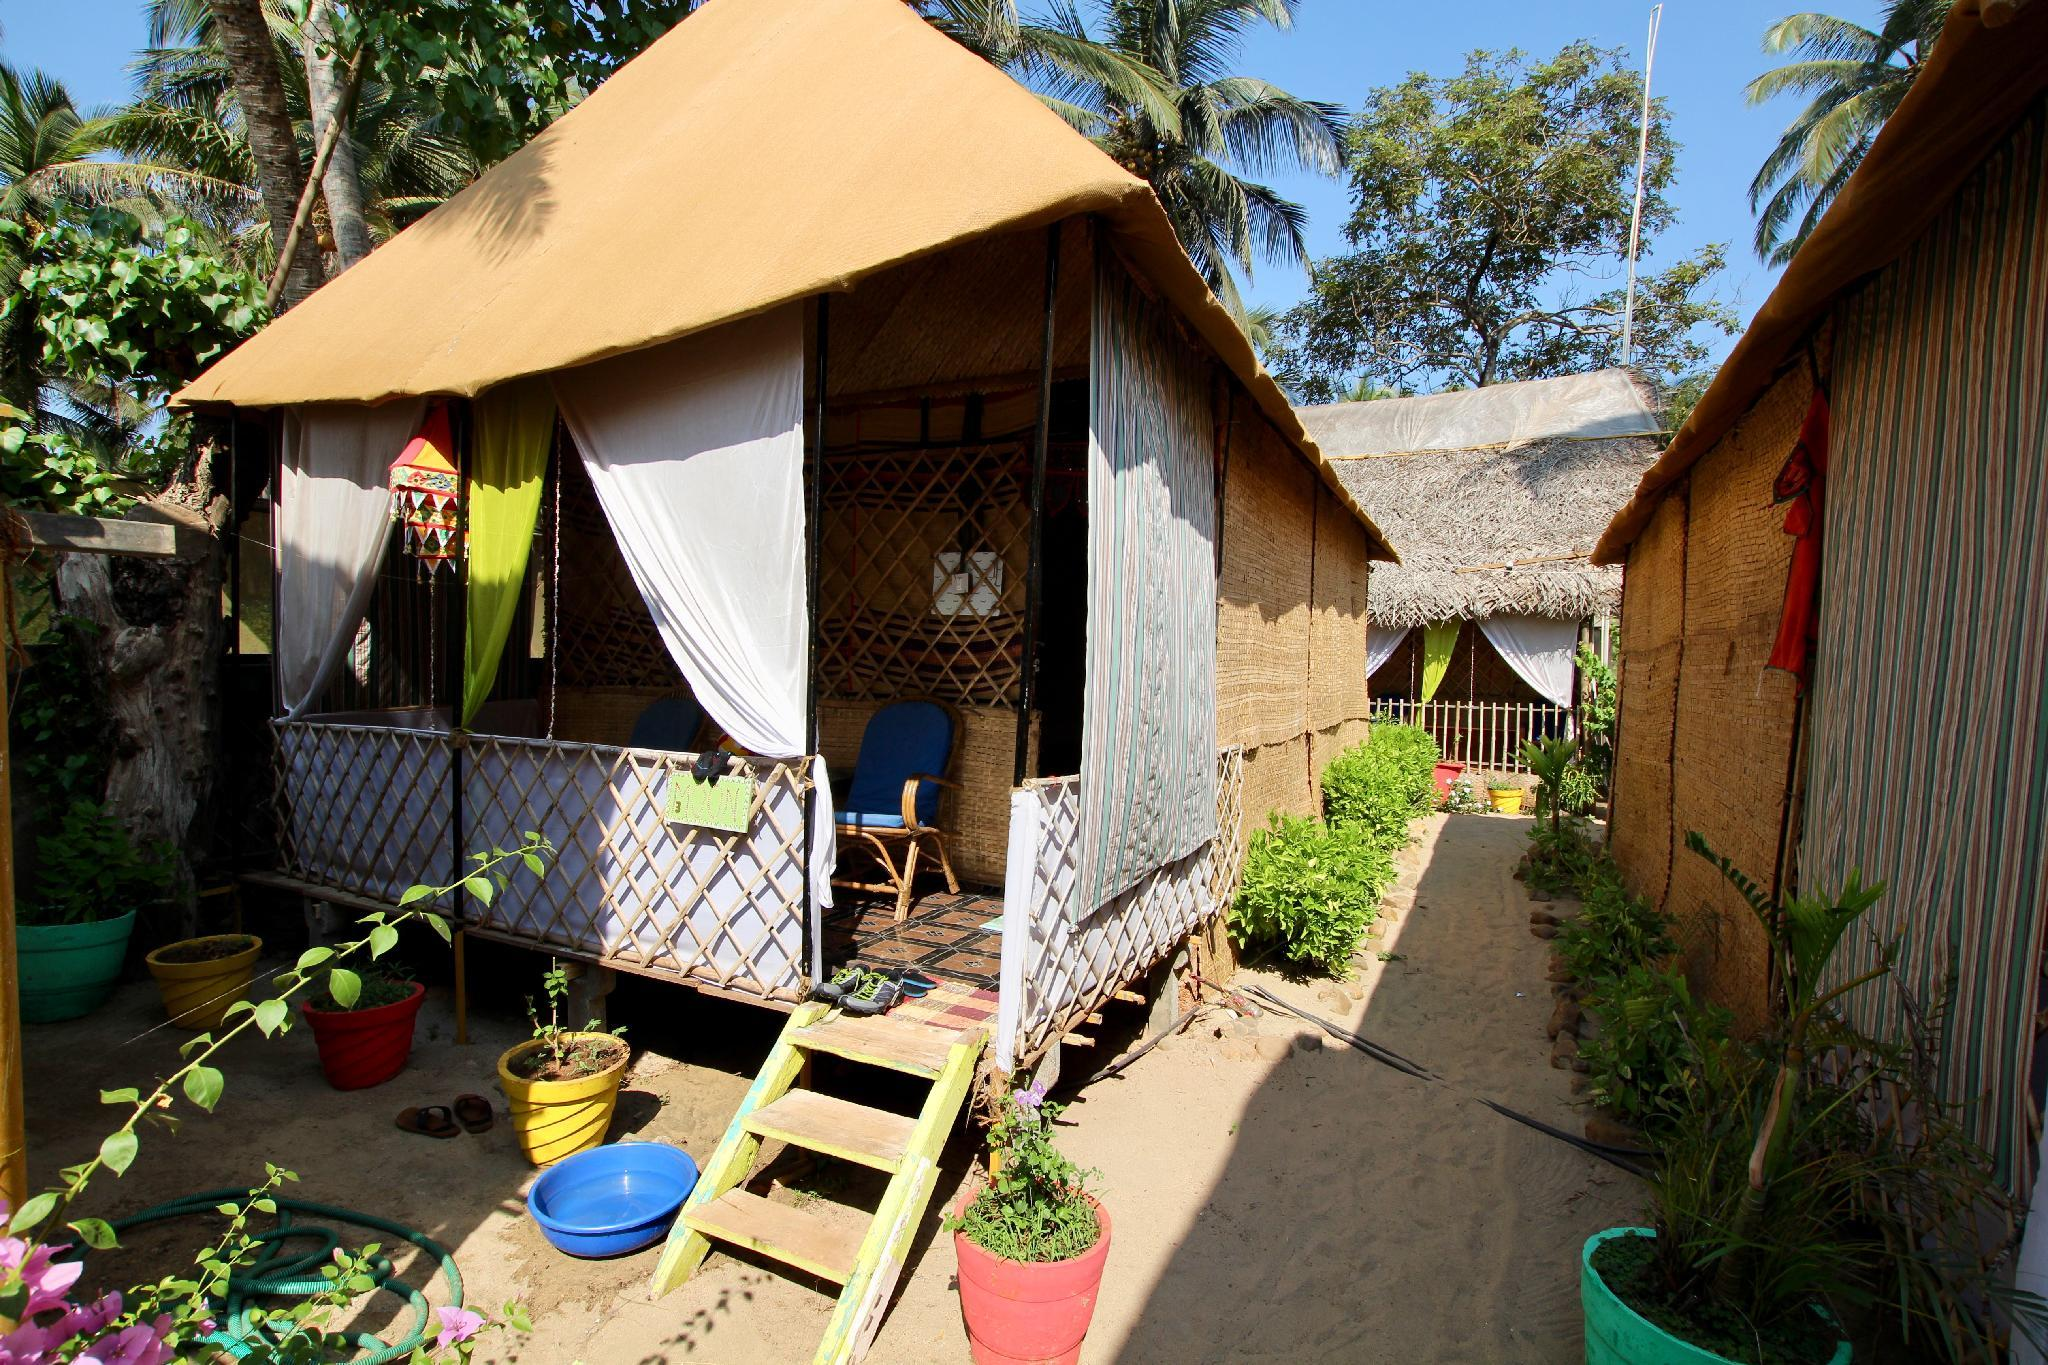 Barraca Bambú (Bamboo Hut)